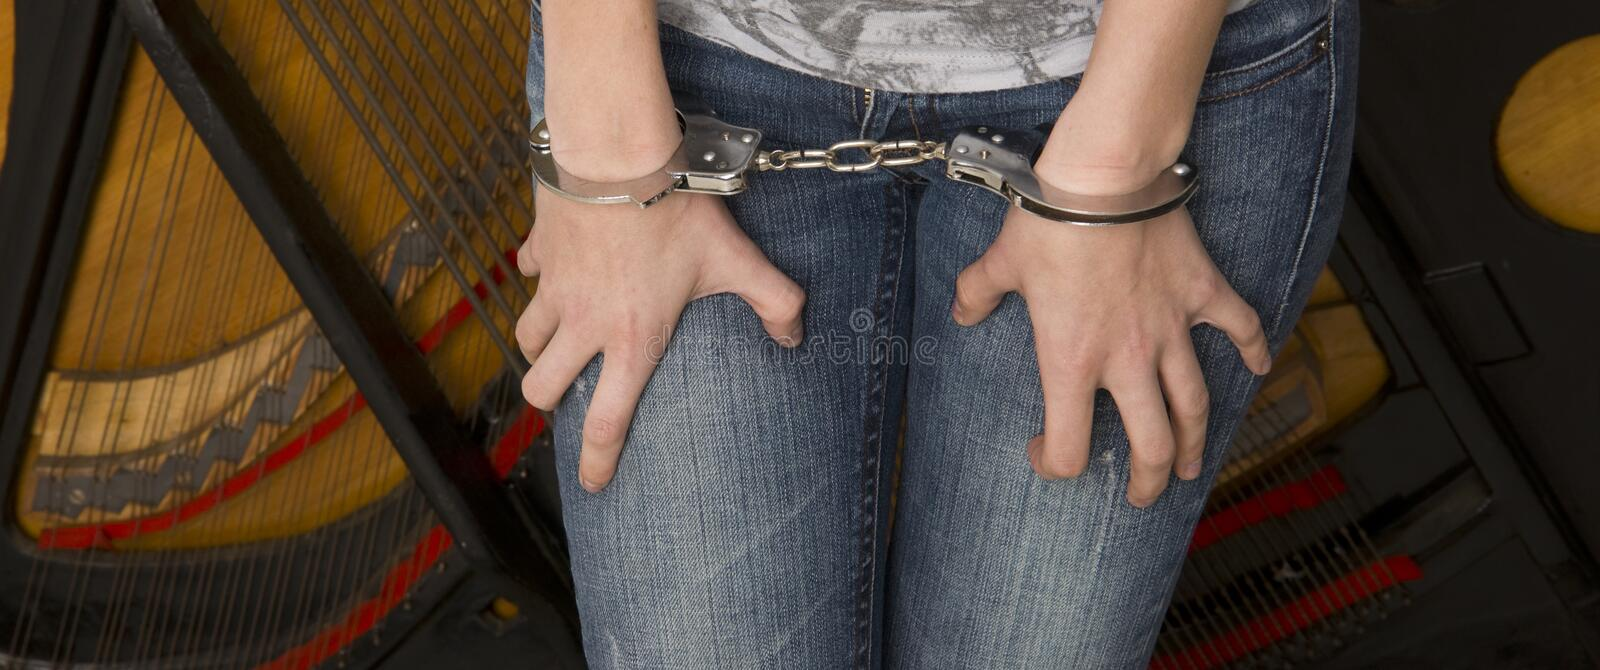 Download Female Wrists Waist Handcuffed Locked Restrained Stock Image - Image: 25085619